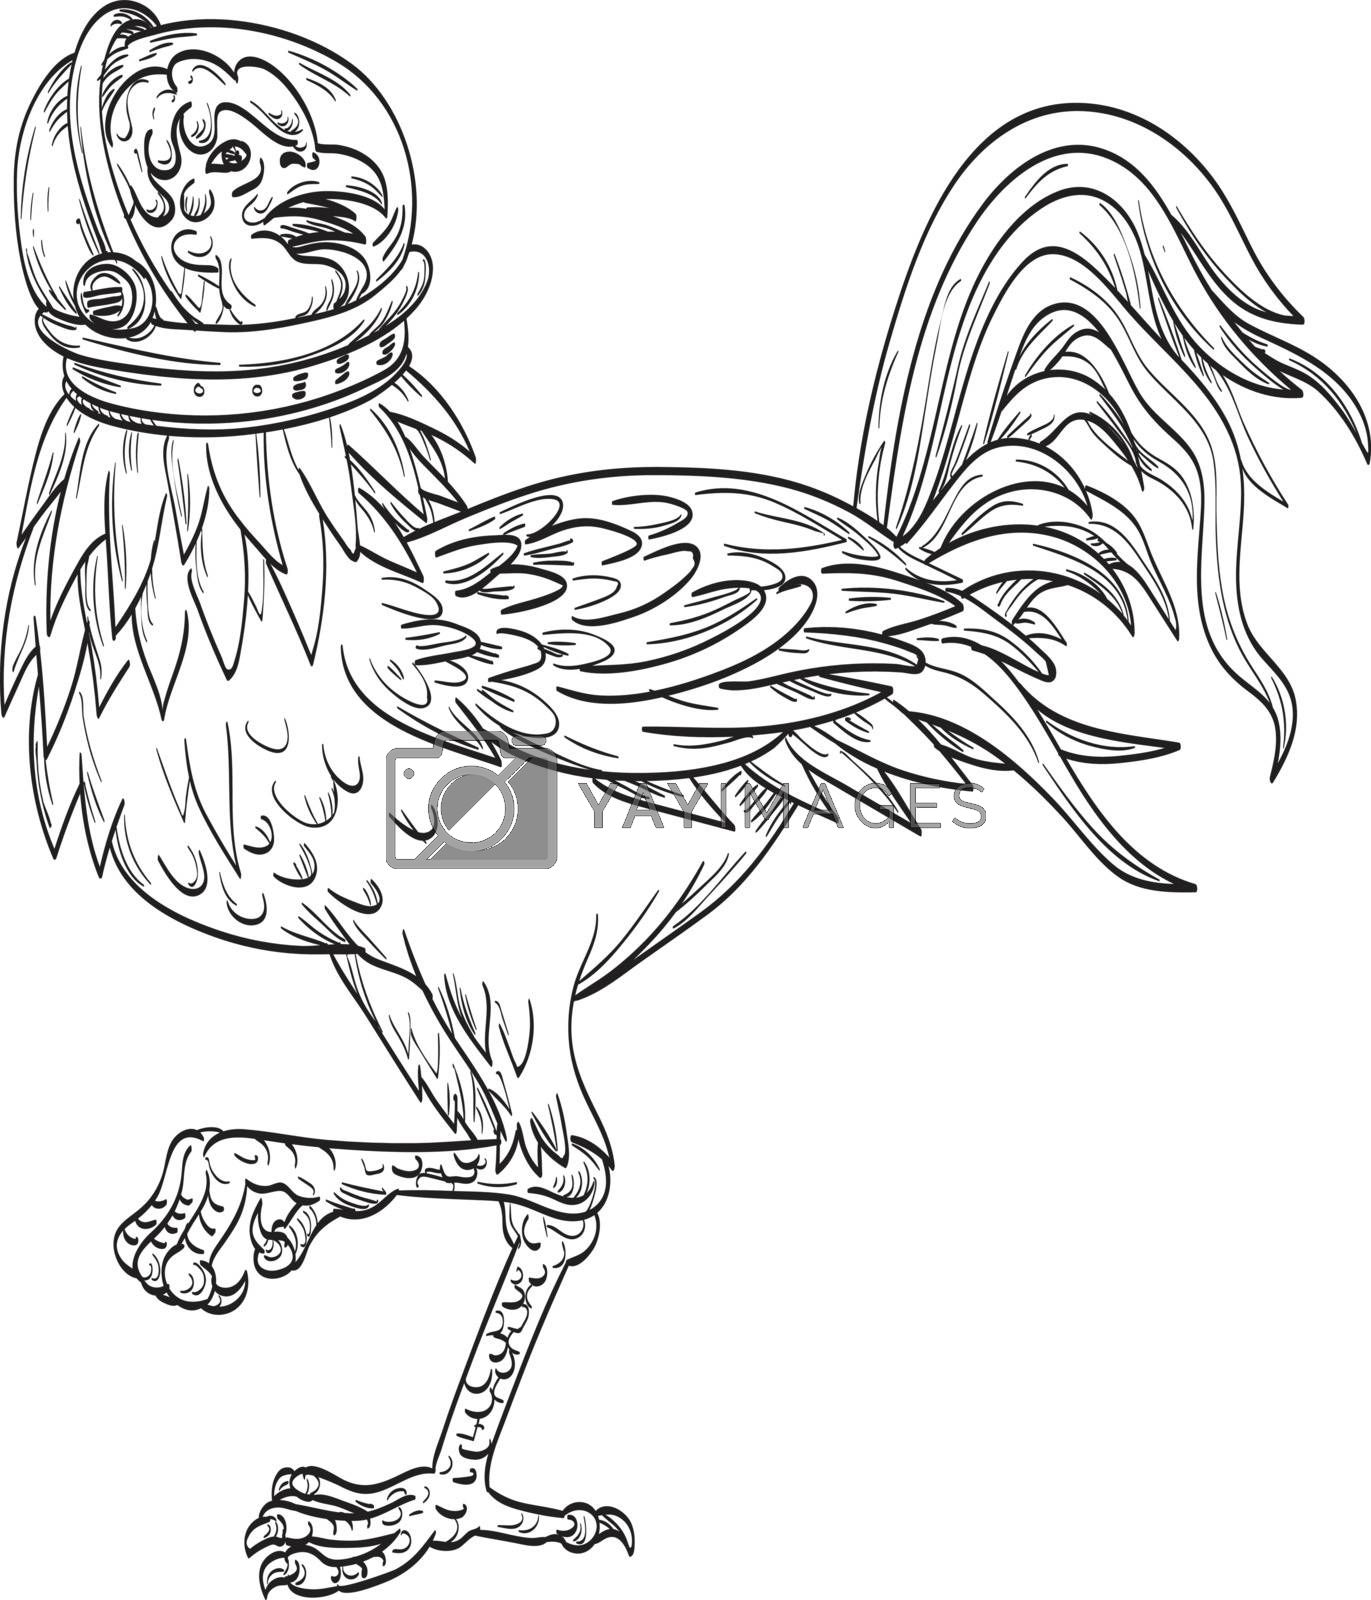 Ukiyo-e or ukiyo style illustration of a basan, basabasa or inuhoo, a fowl-like bird from Japanese mythology and folklore like a rooster wearing a space helmet standing side in black and white.